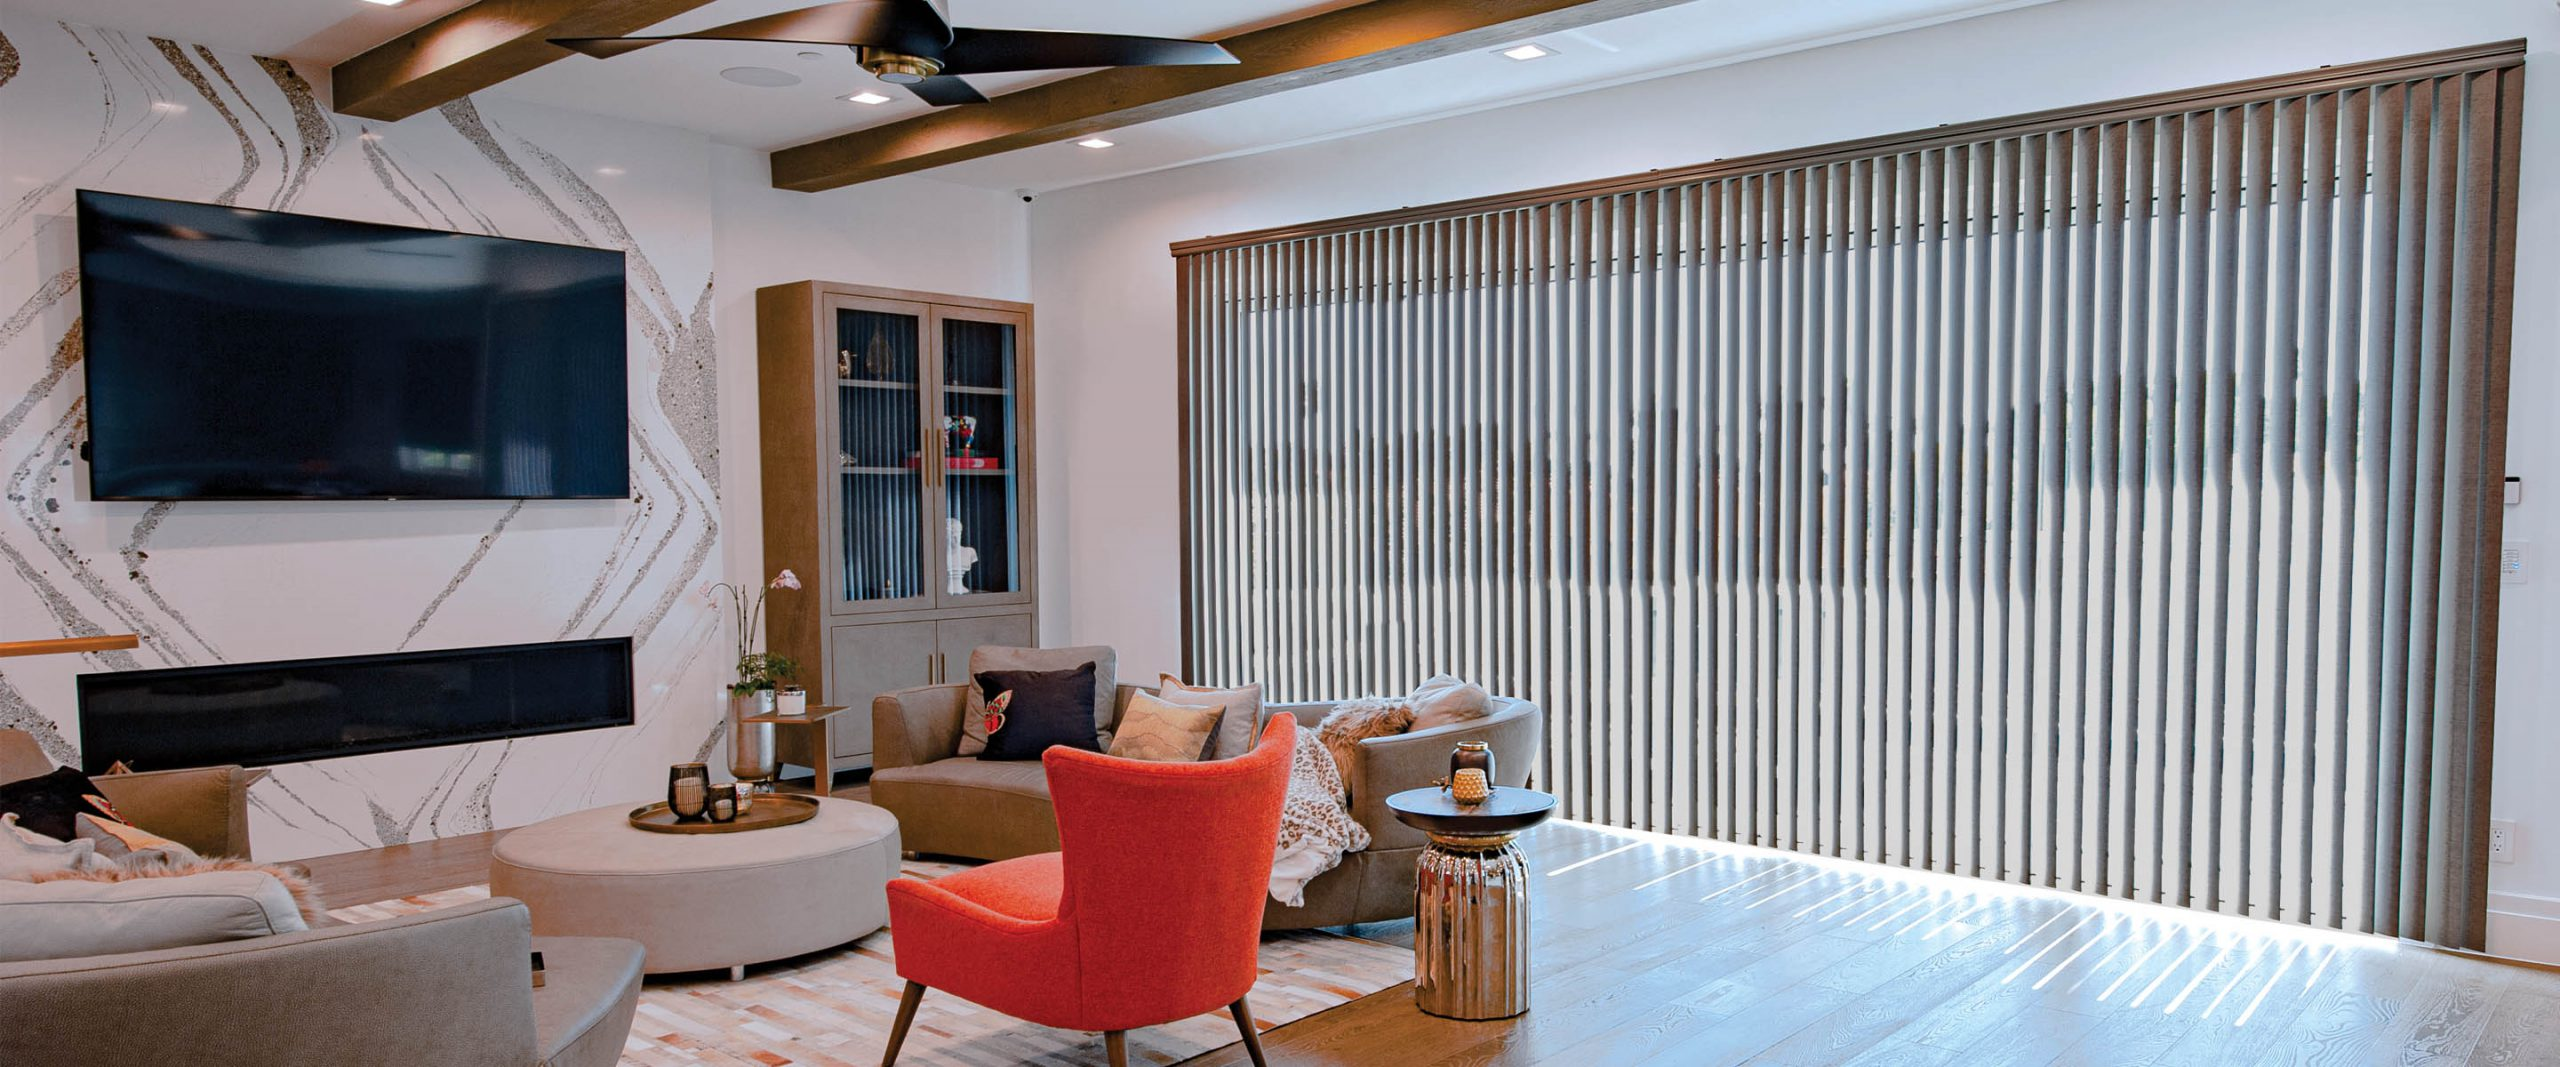 vertical blinds in modern living room with orange chair